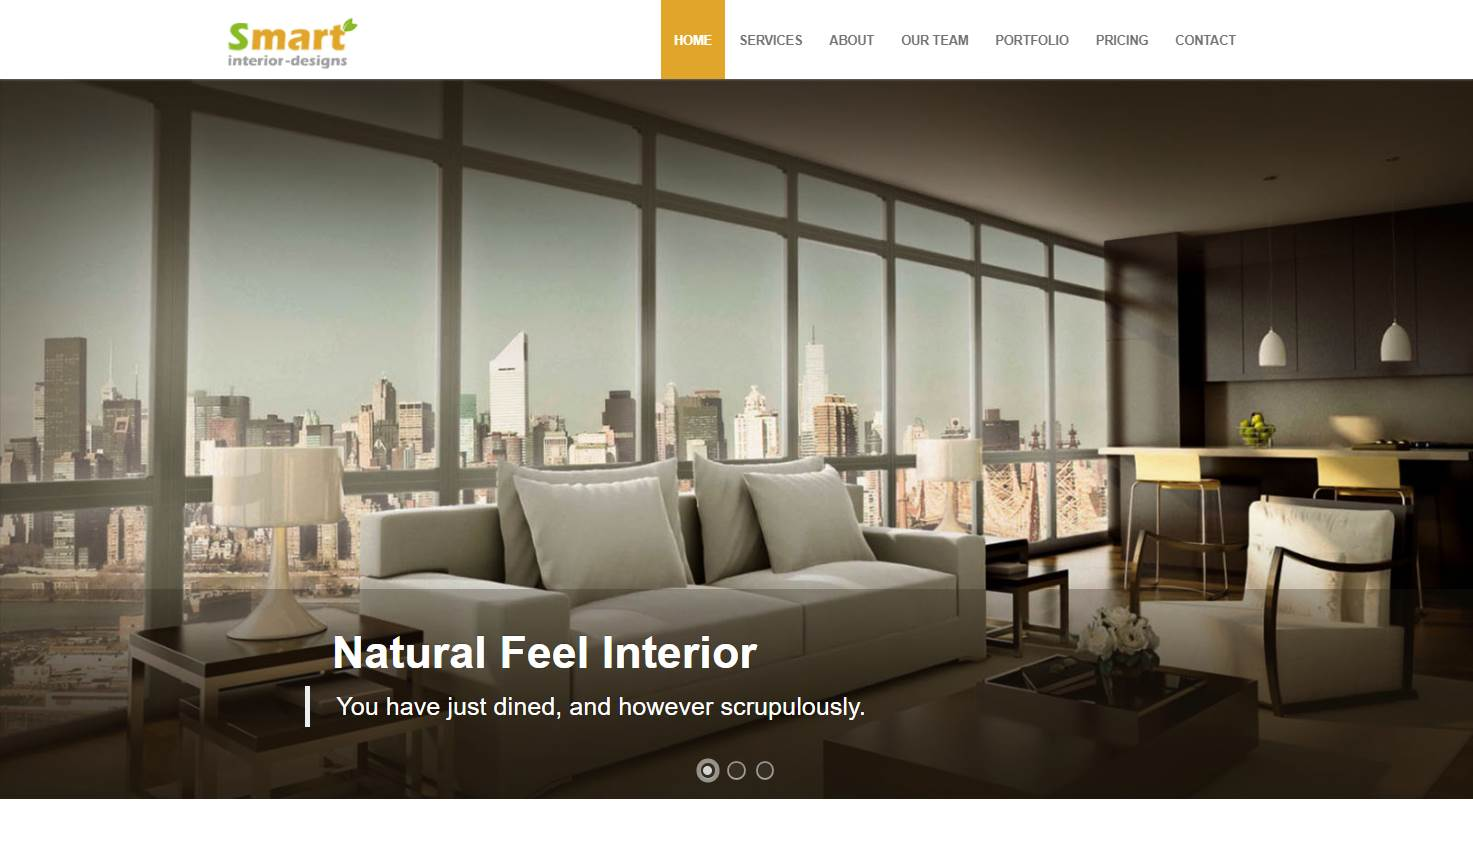 Smart Interior: An Interior Design Website Template